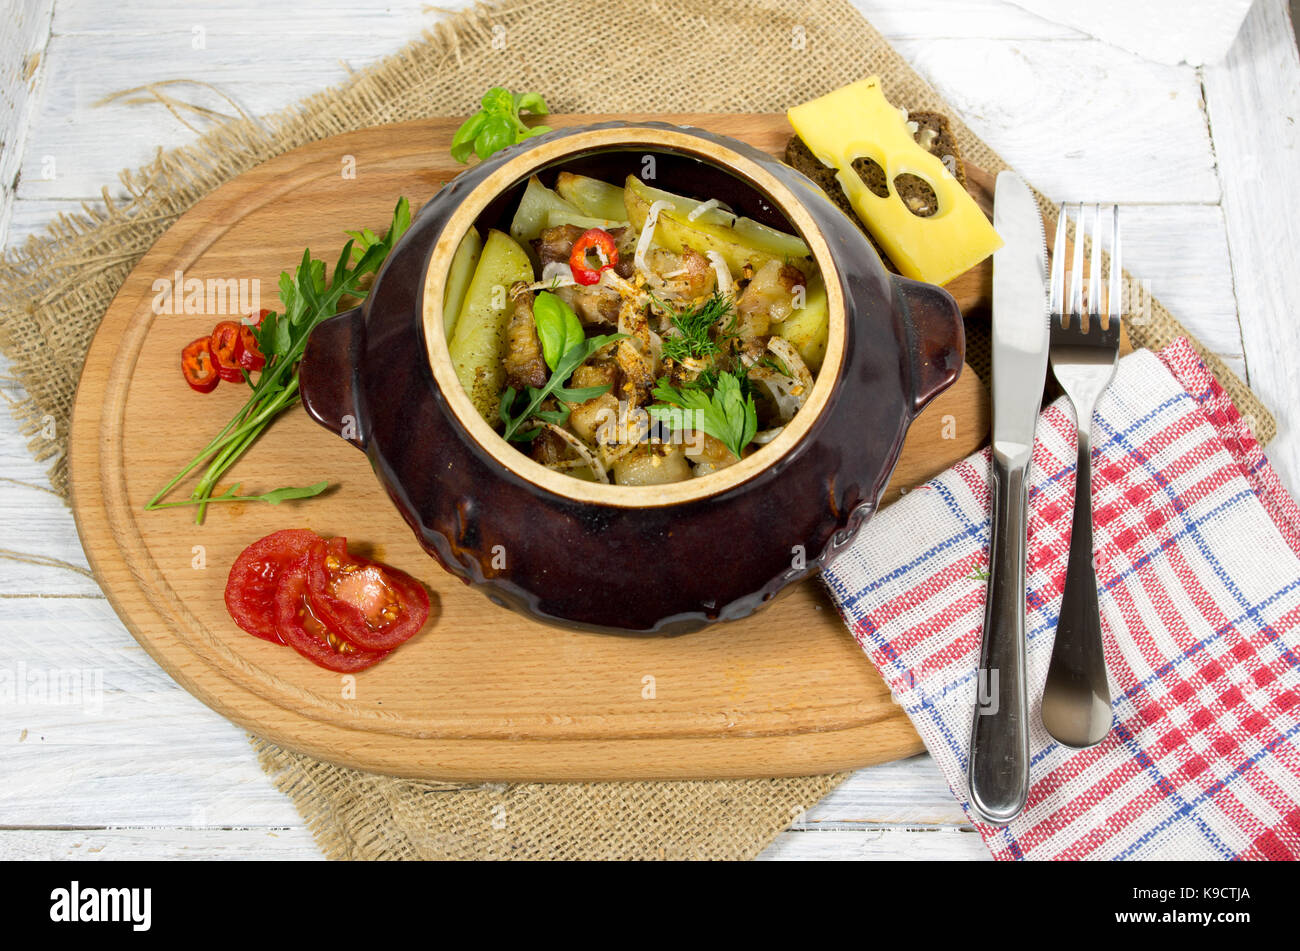 Potatoes in clay pots. Potato with bacon. Potatoes and vegetables. - Stock Image